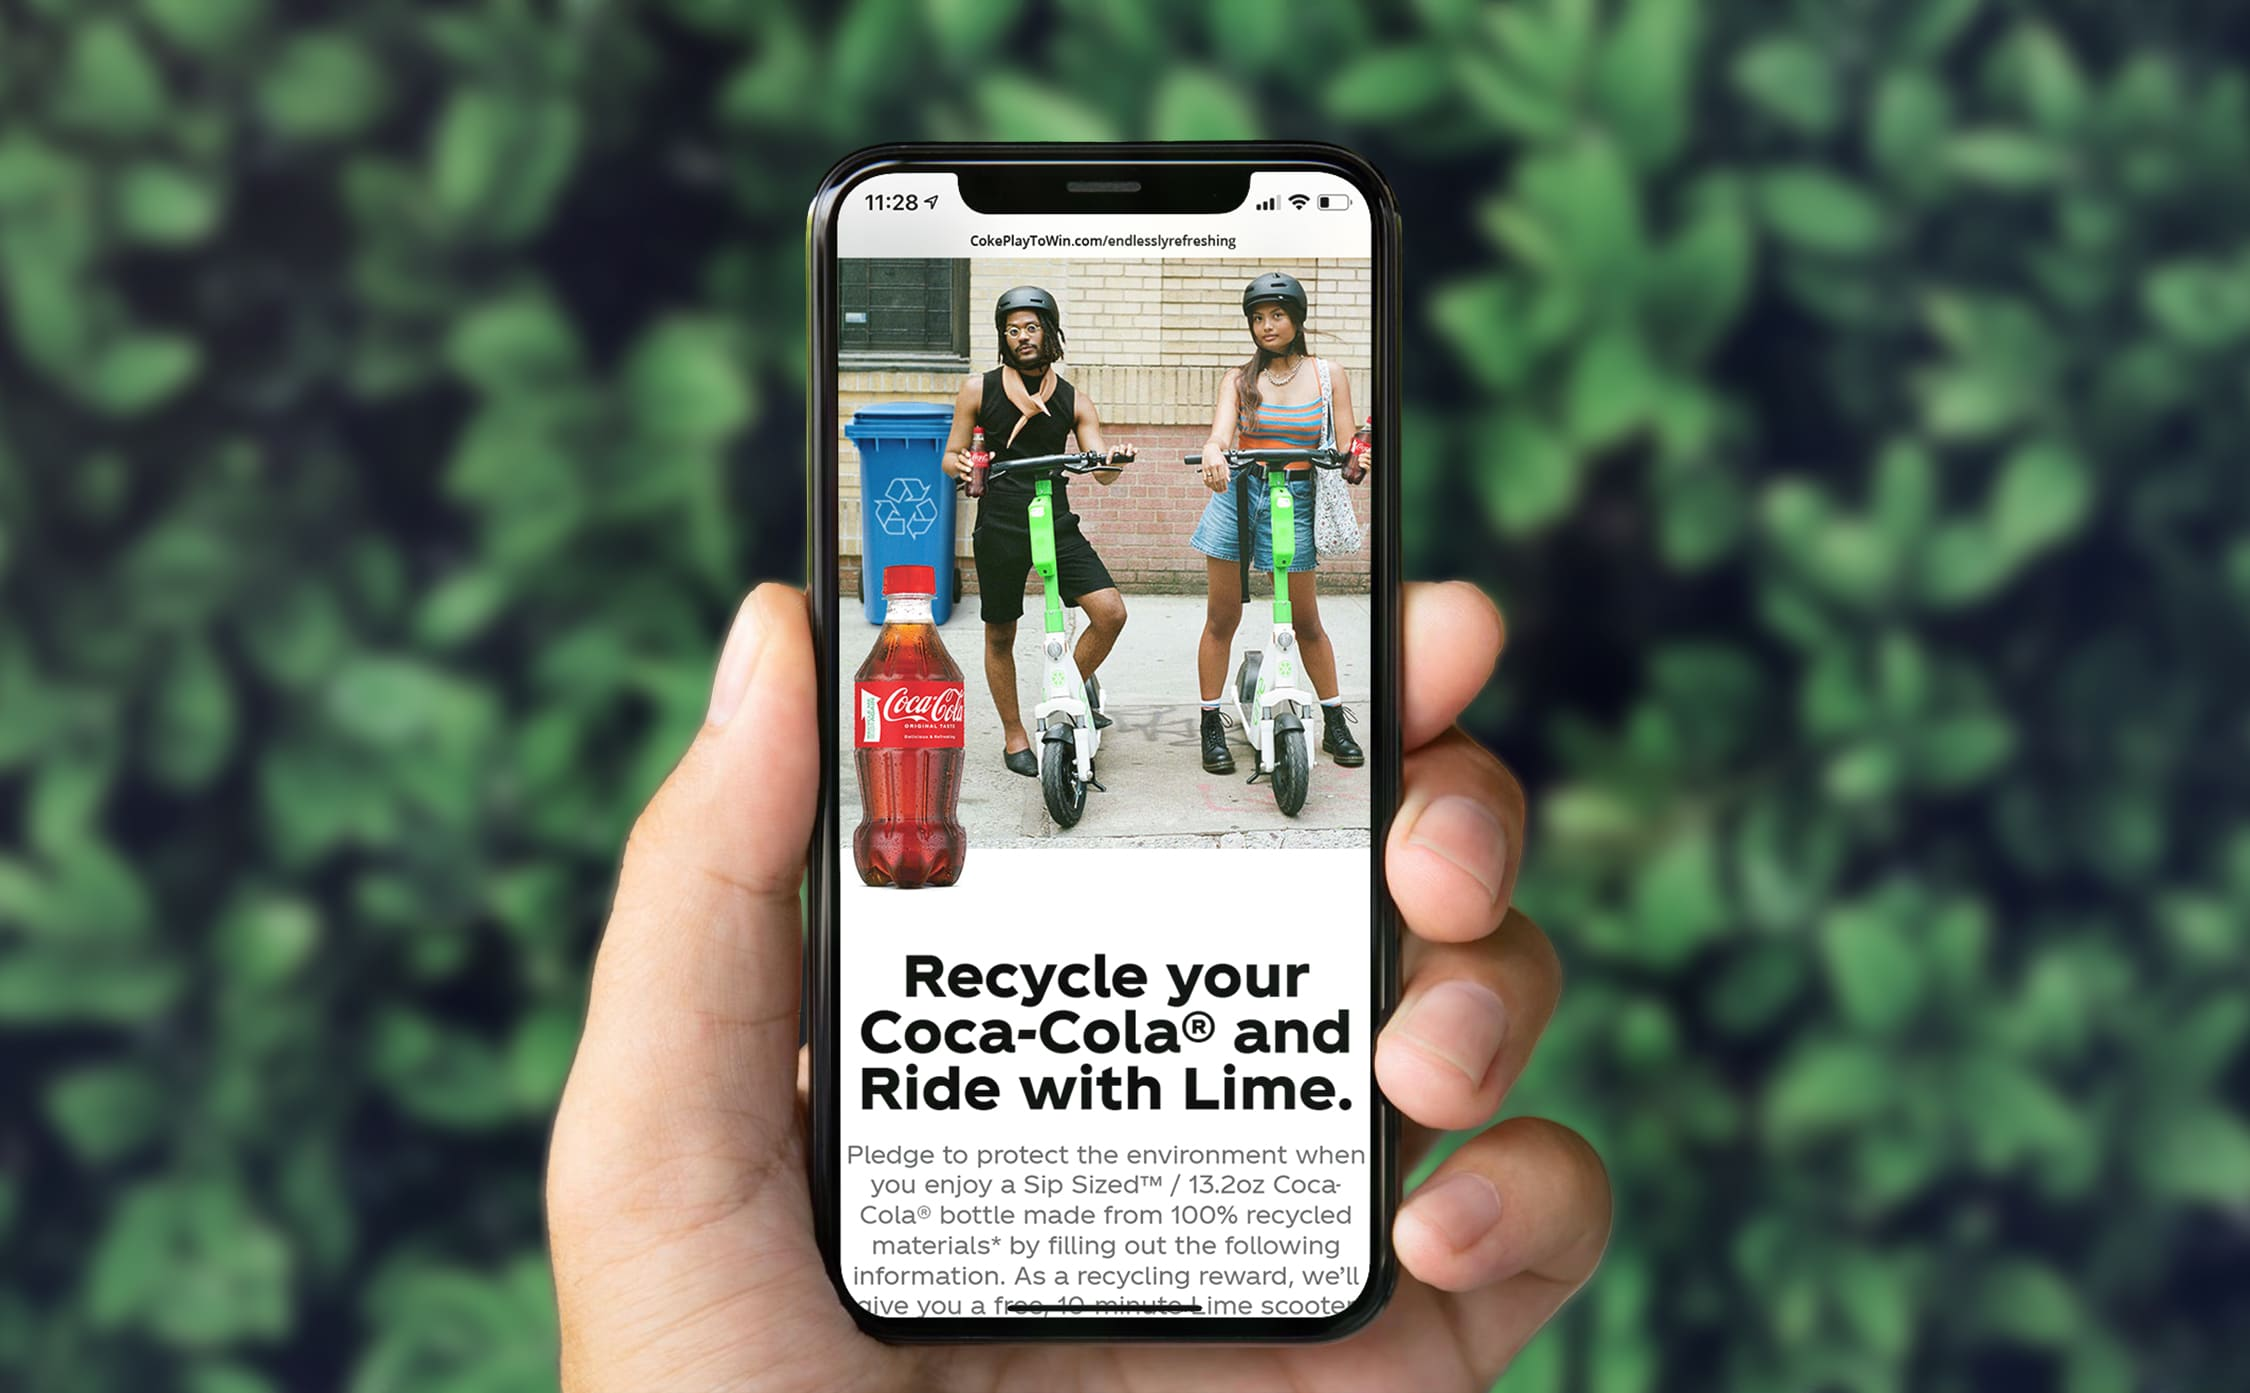 Coca-Cola is offering free rides to people who pledge to recycle their soda bottles 17